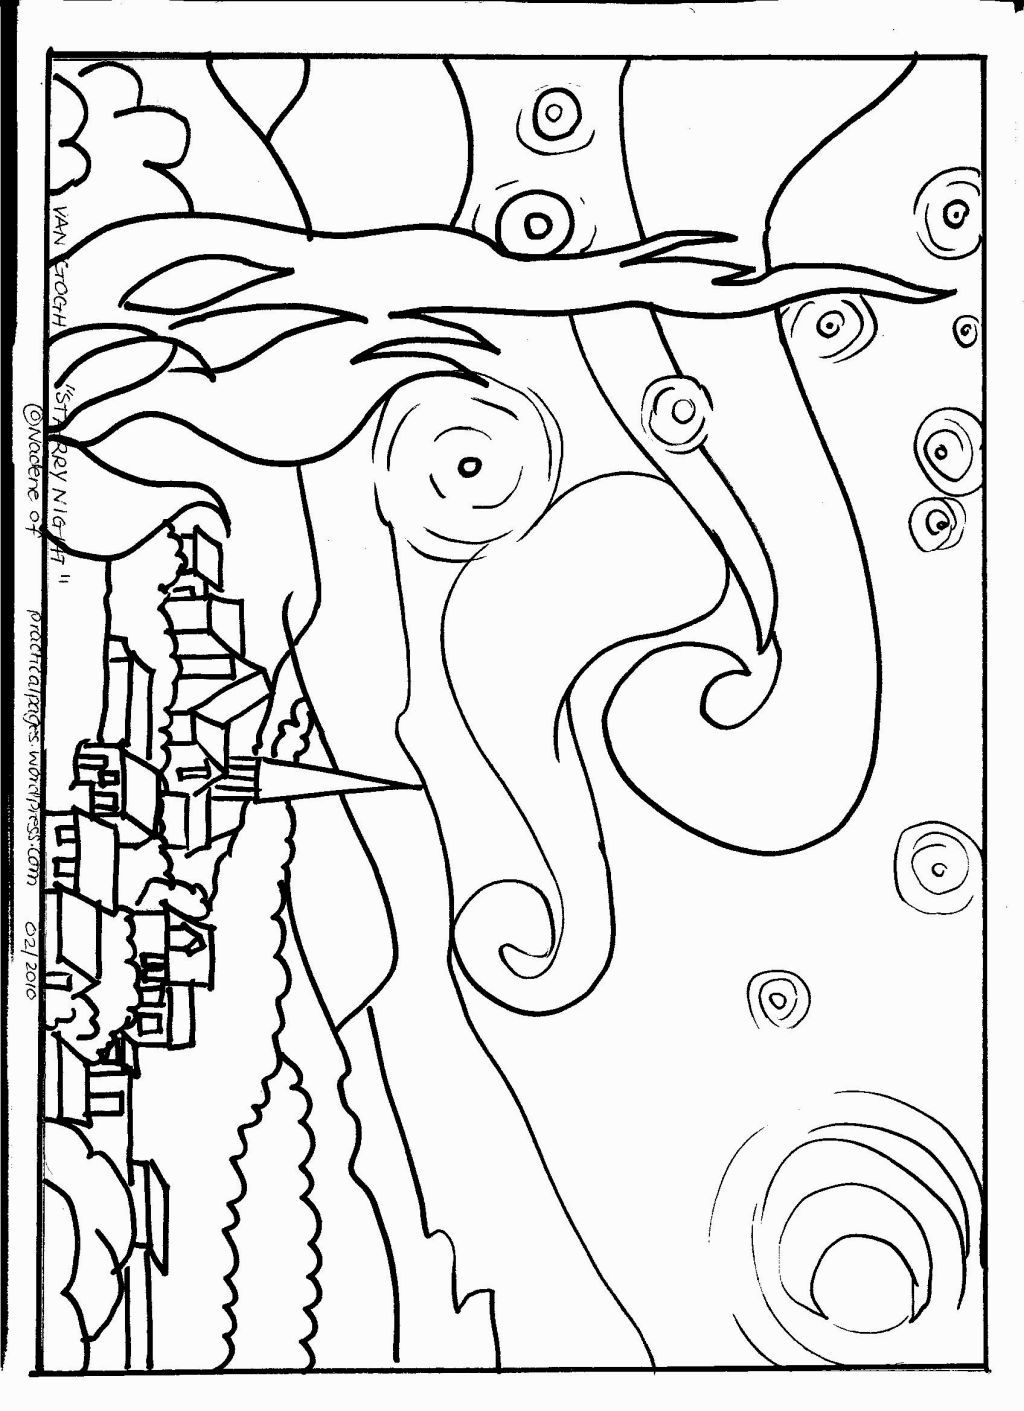 vincent van gogh starry night coloring page van gogh coloring pages google zoeken van gogh van starry coloring page gogh night vincent